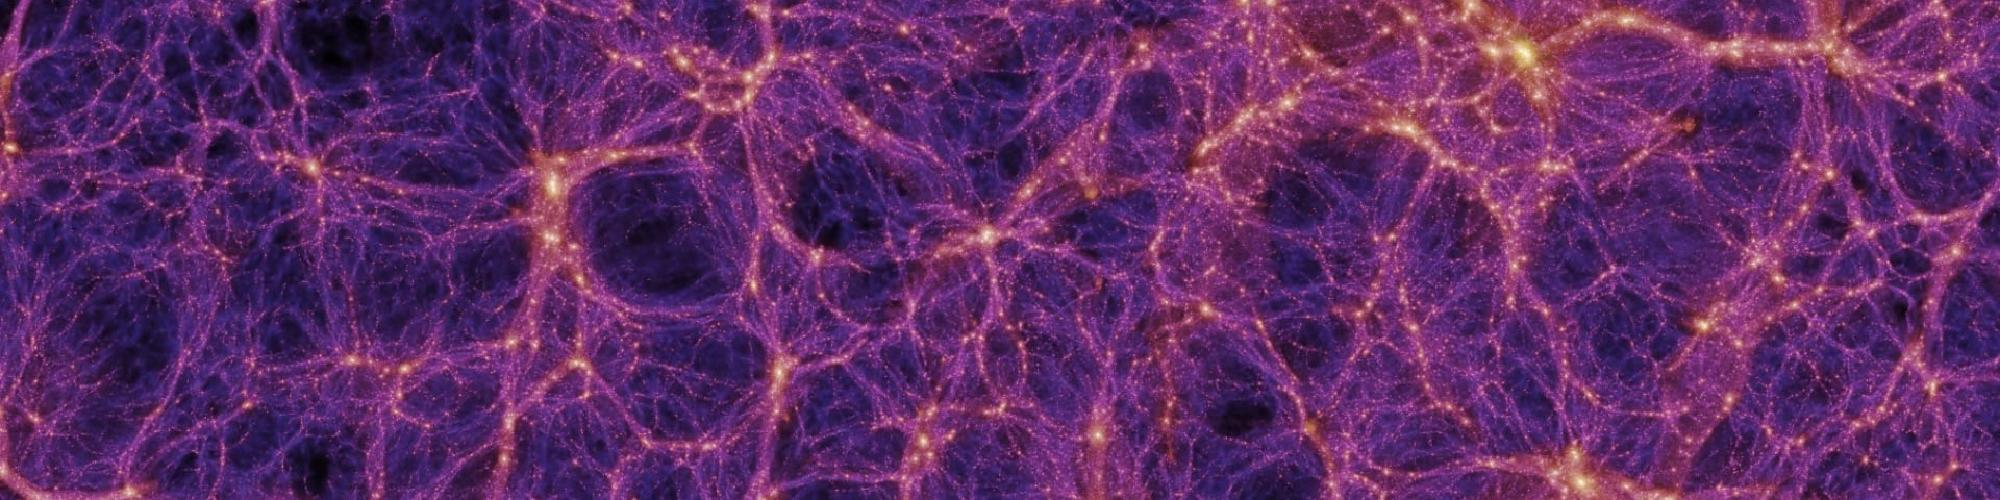 Studying 'Holes in the Universe' to sharpen cosmic measurements